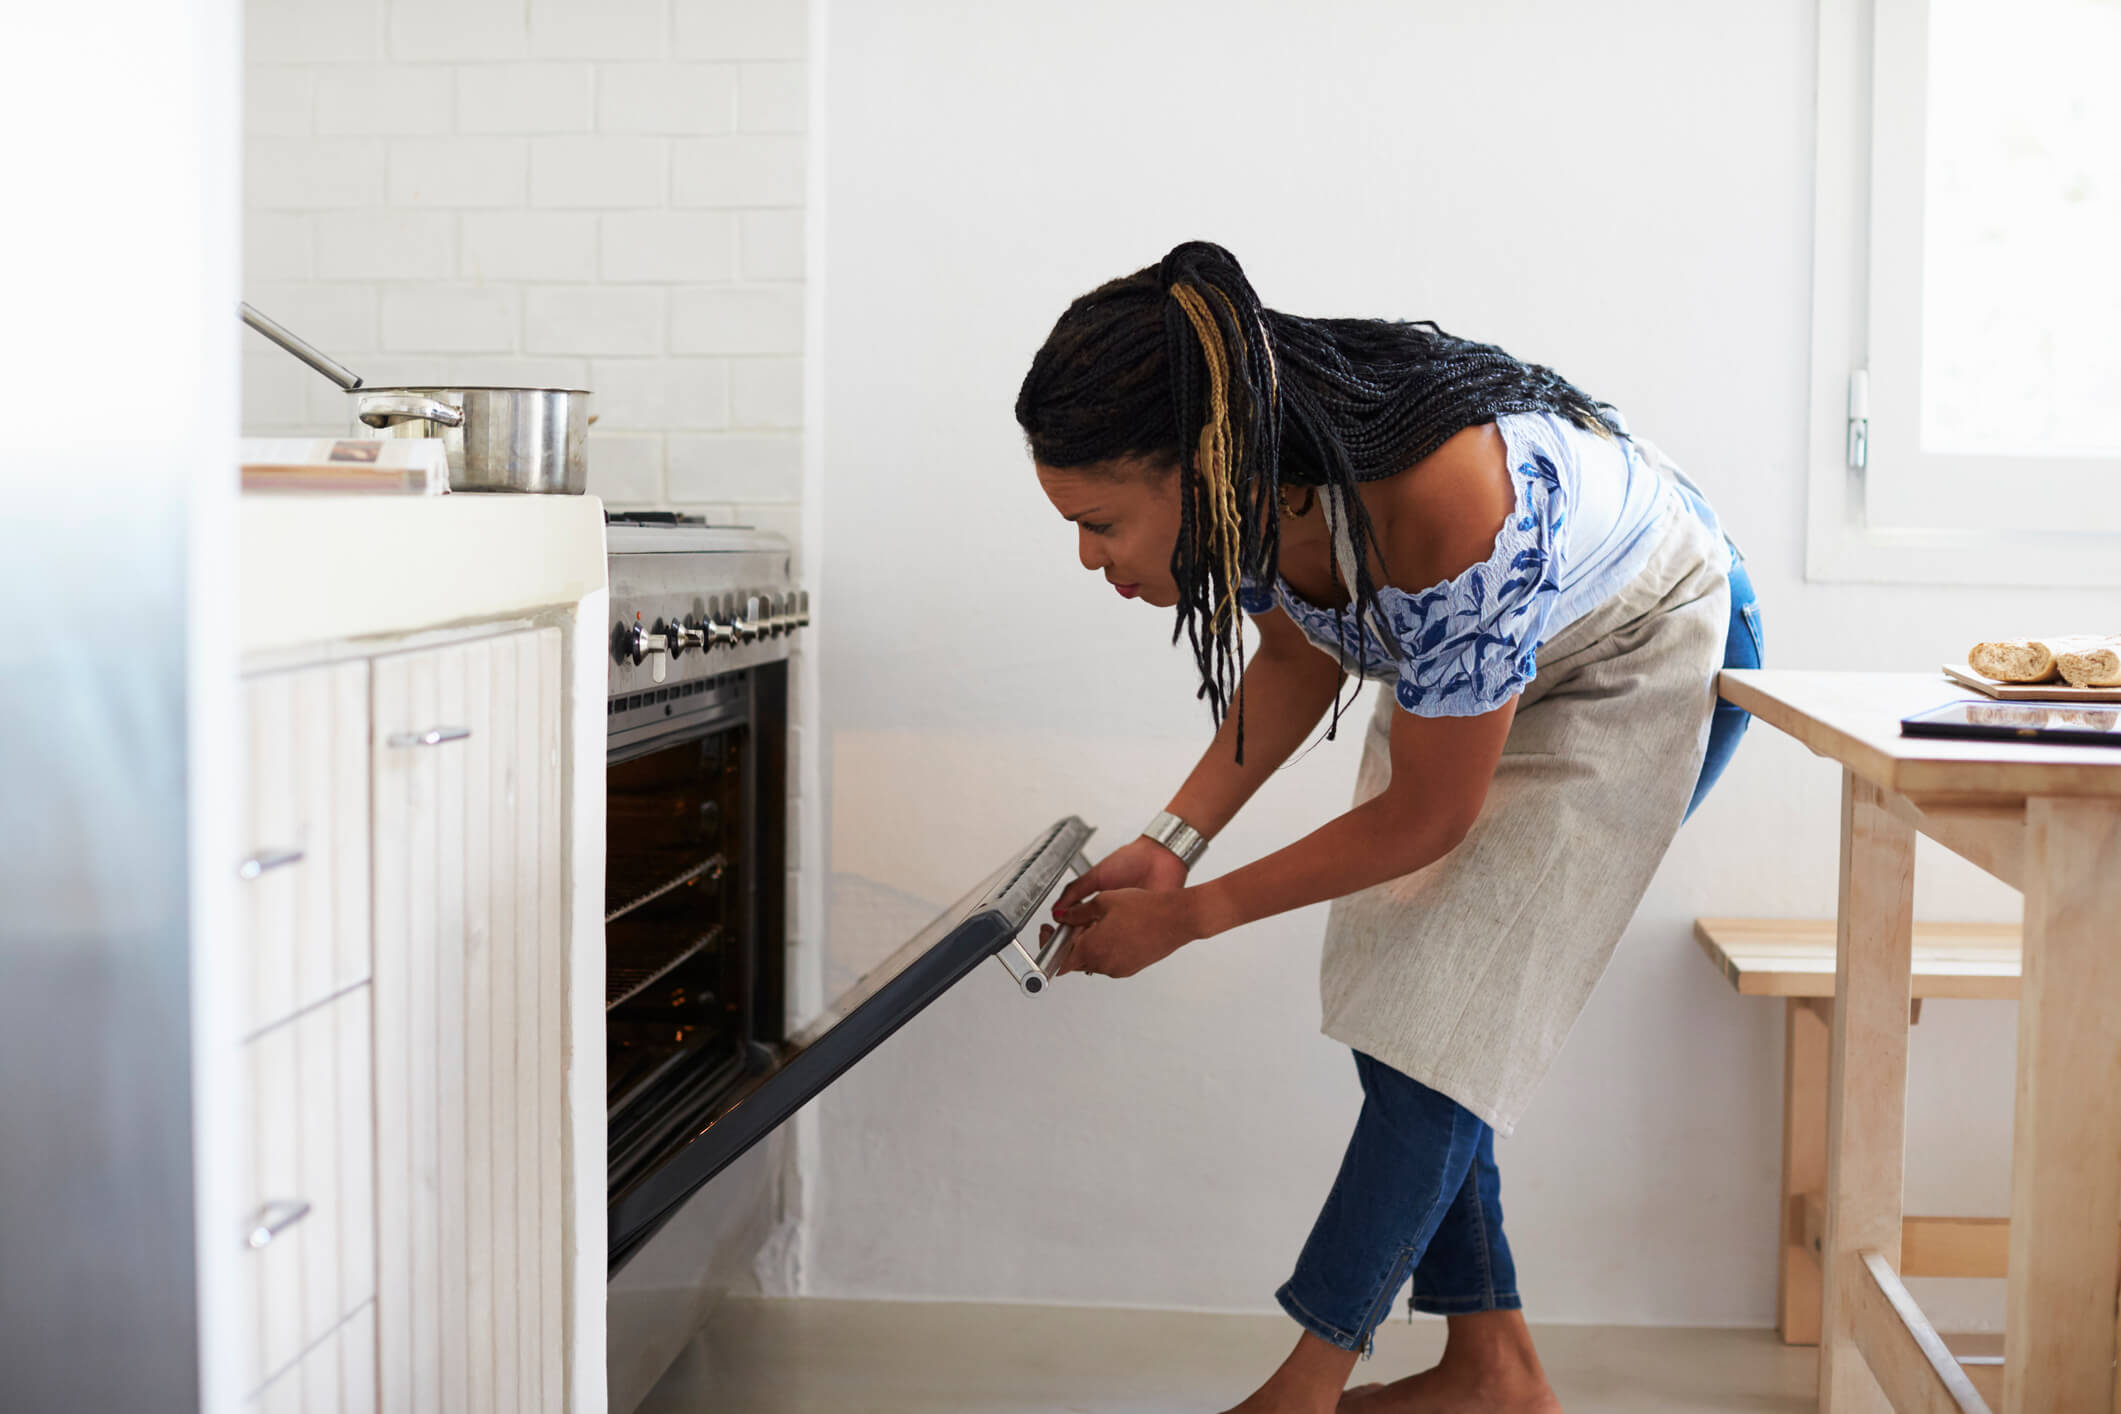 Woman bending down to look into the oven in her kitchen.